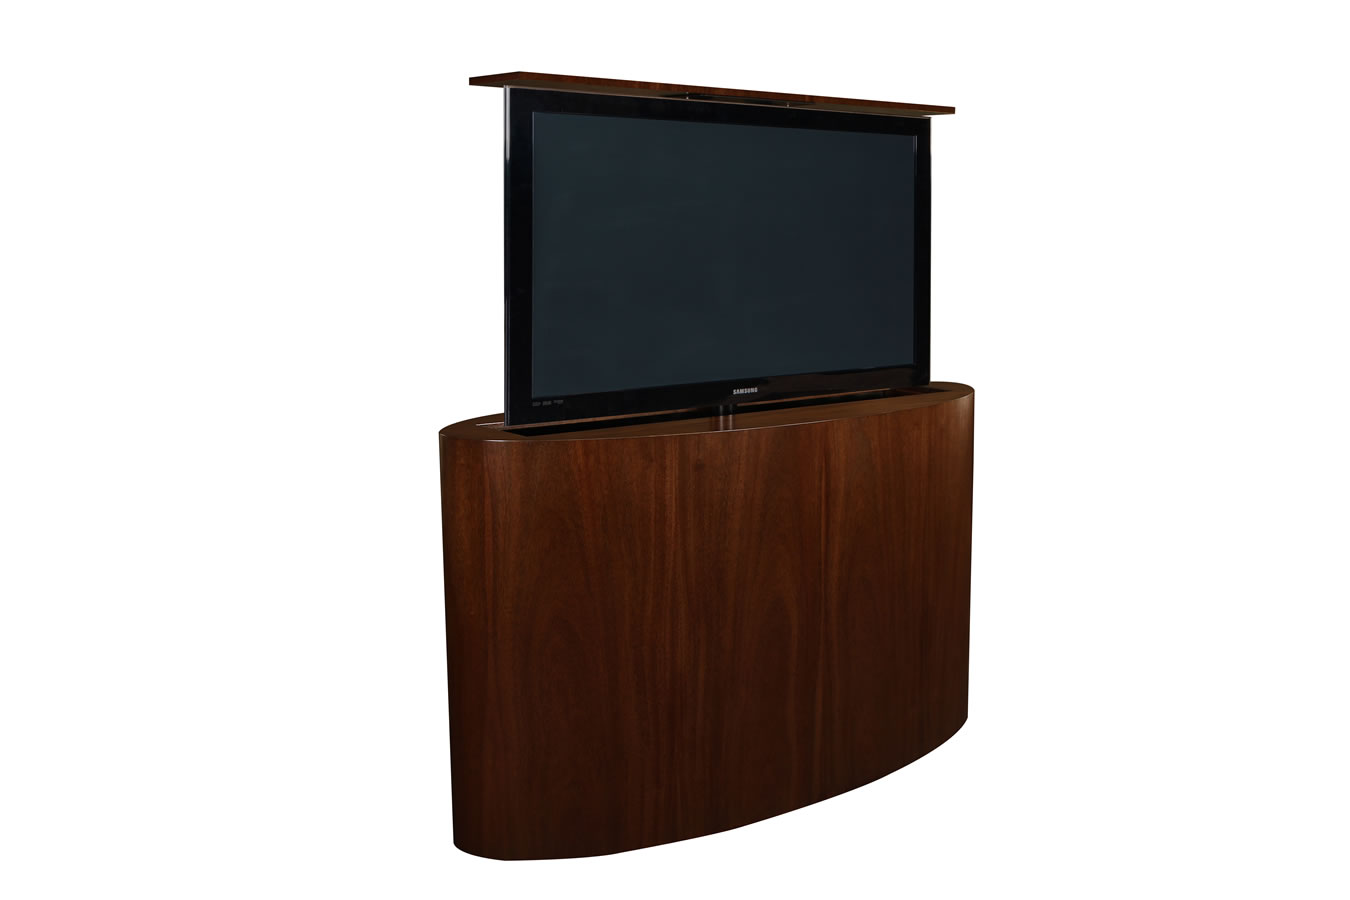 custom tv lift atlantis oval tv lift cabinet tronix. Black Bedroom Furniture Sets. Home Design Ideas